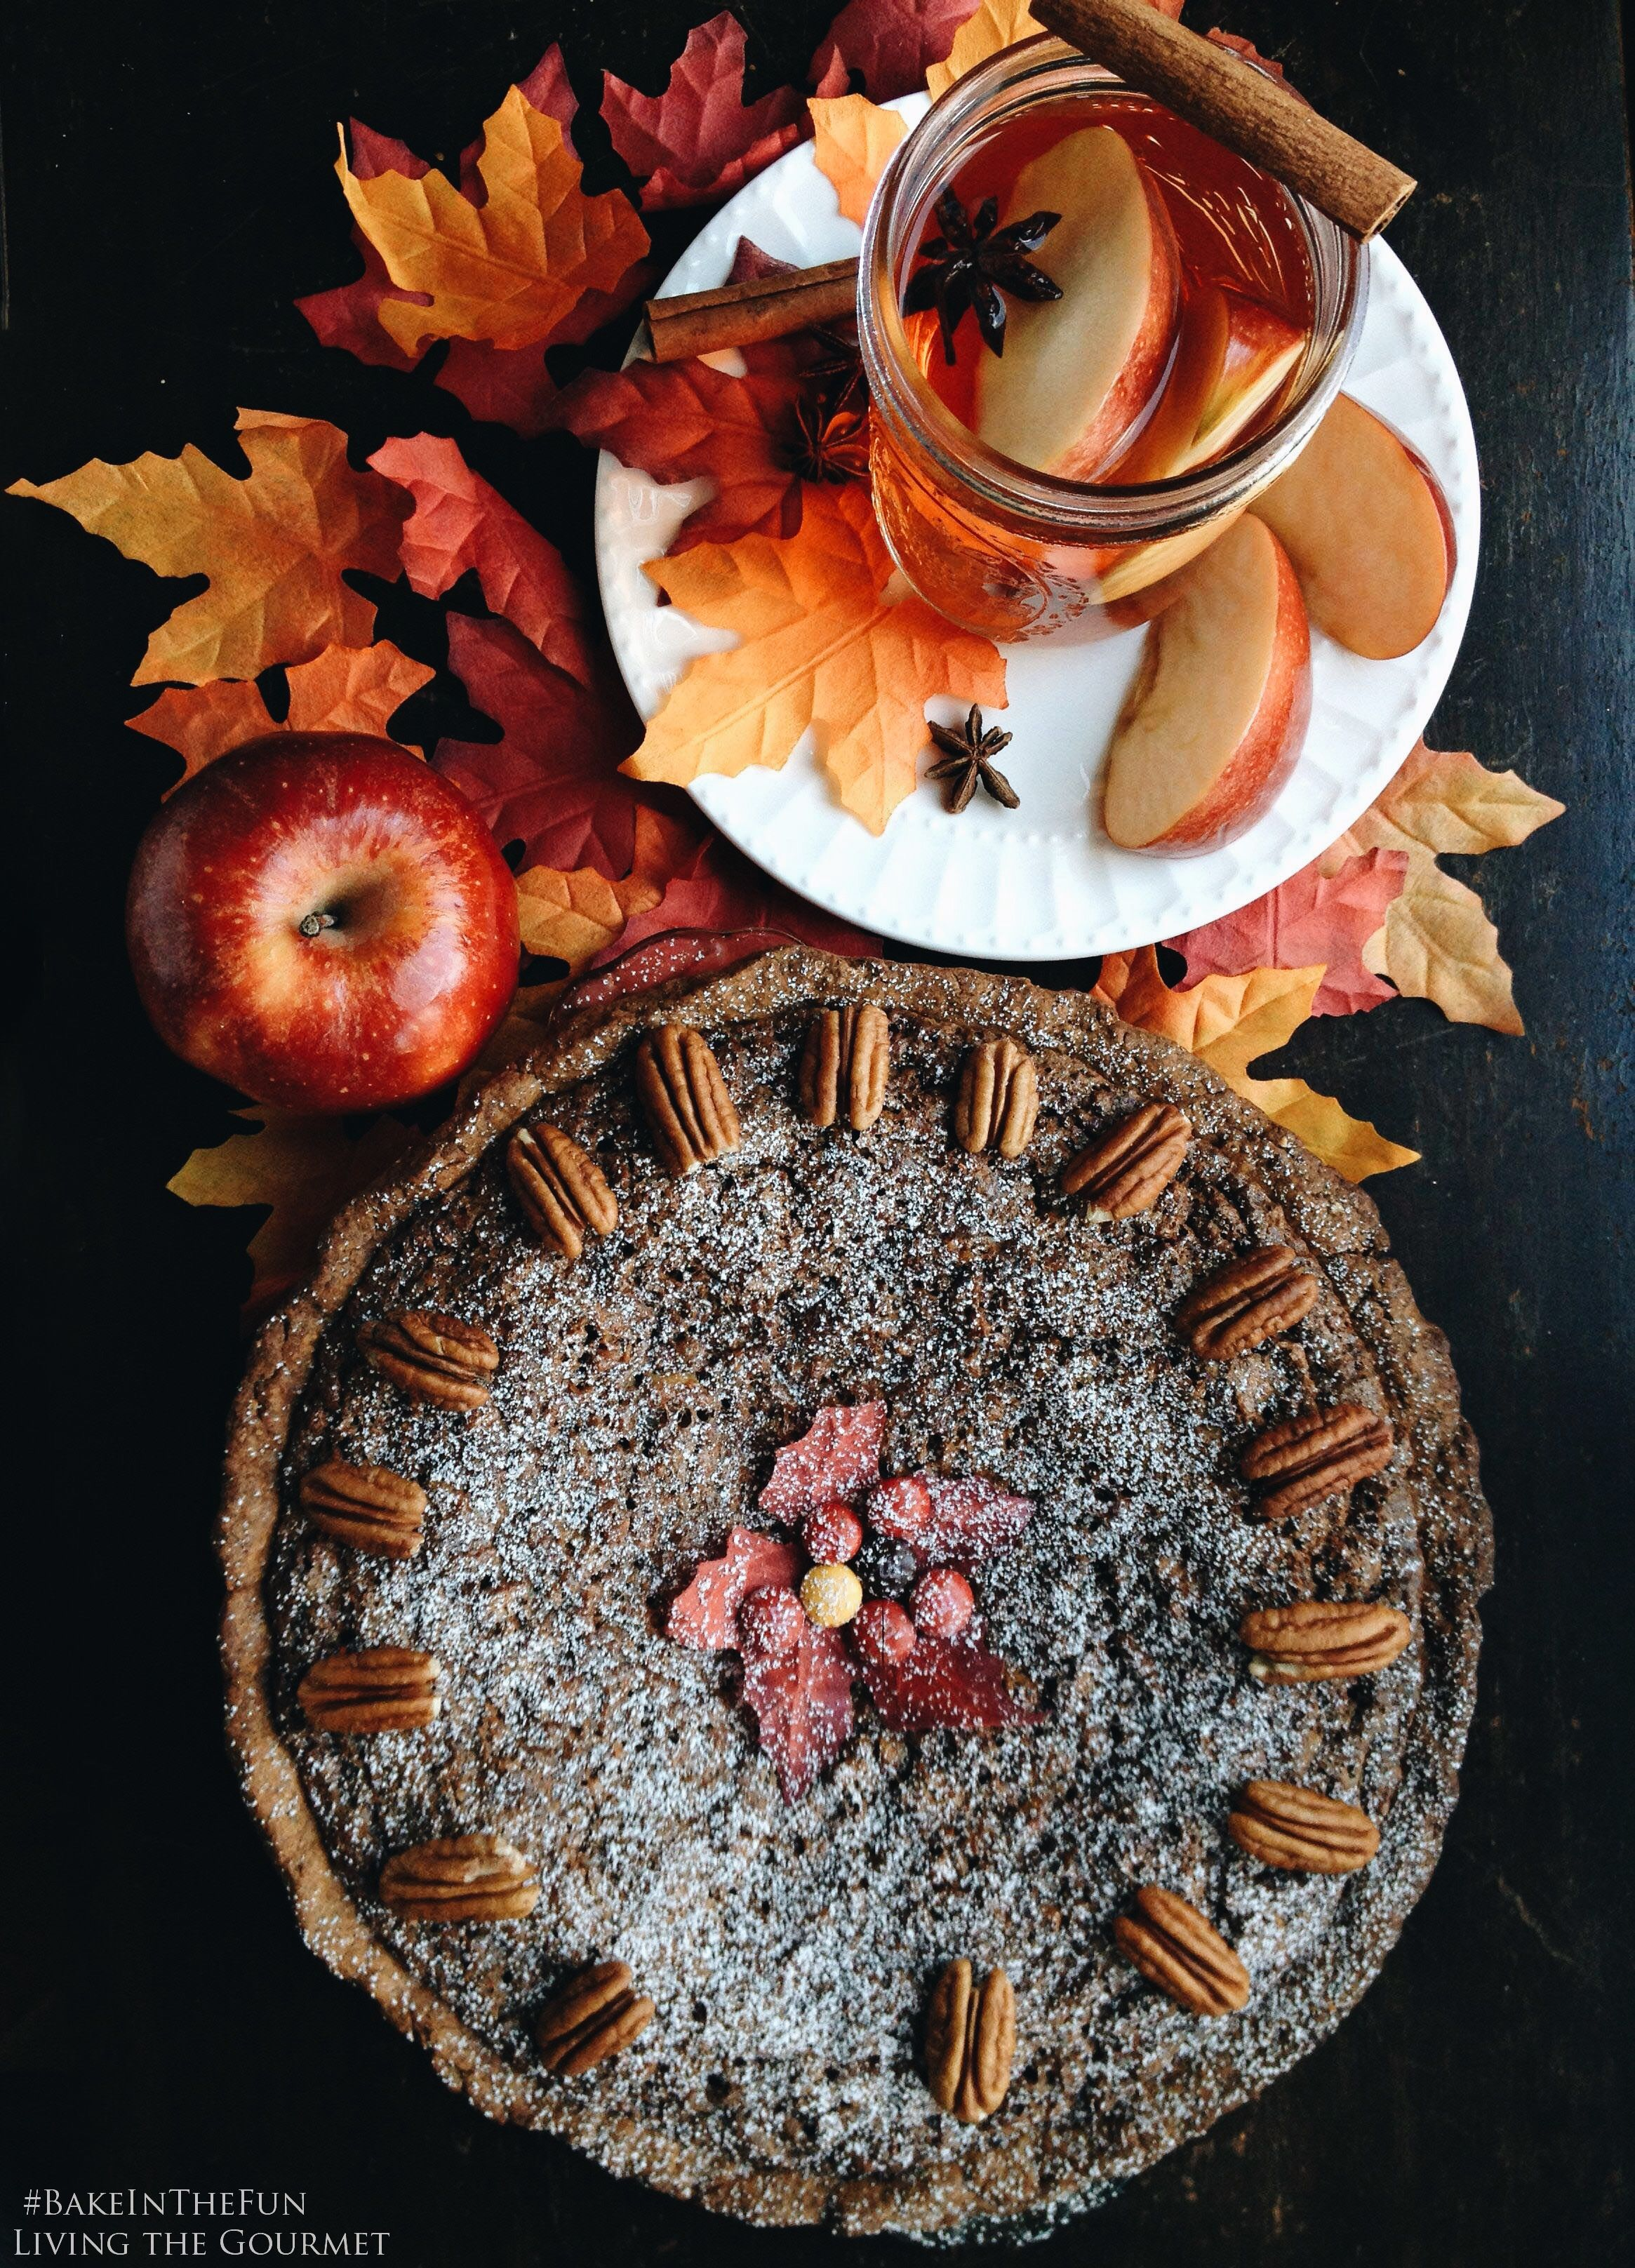 Chocolate Pecan Pie and Spiced Apple Cider | Living the Gourmet